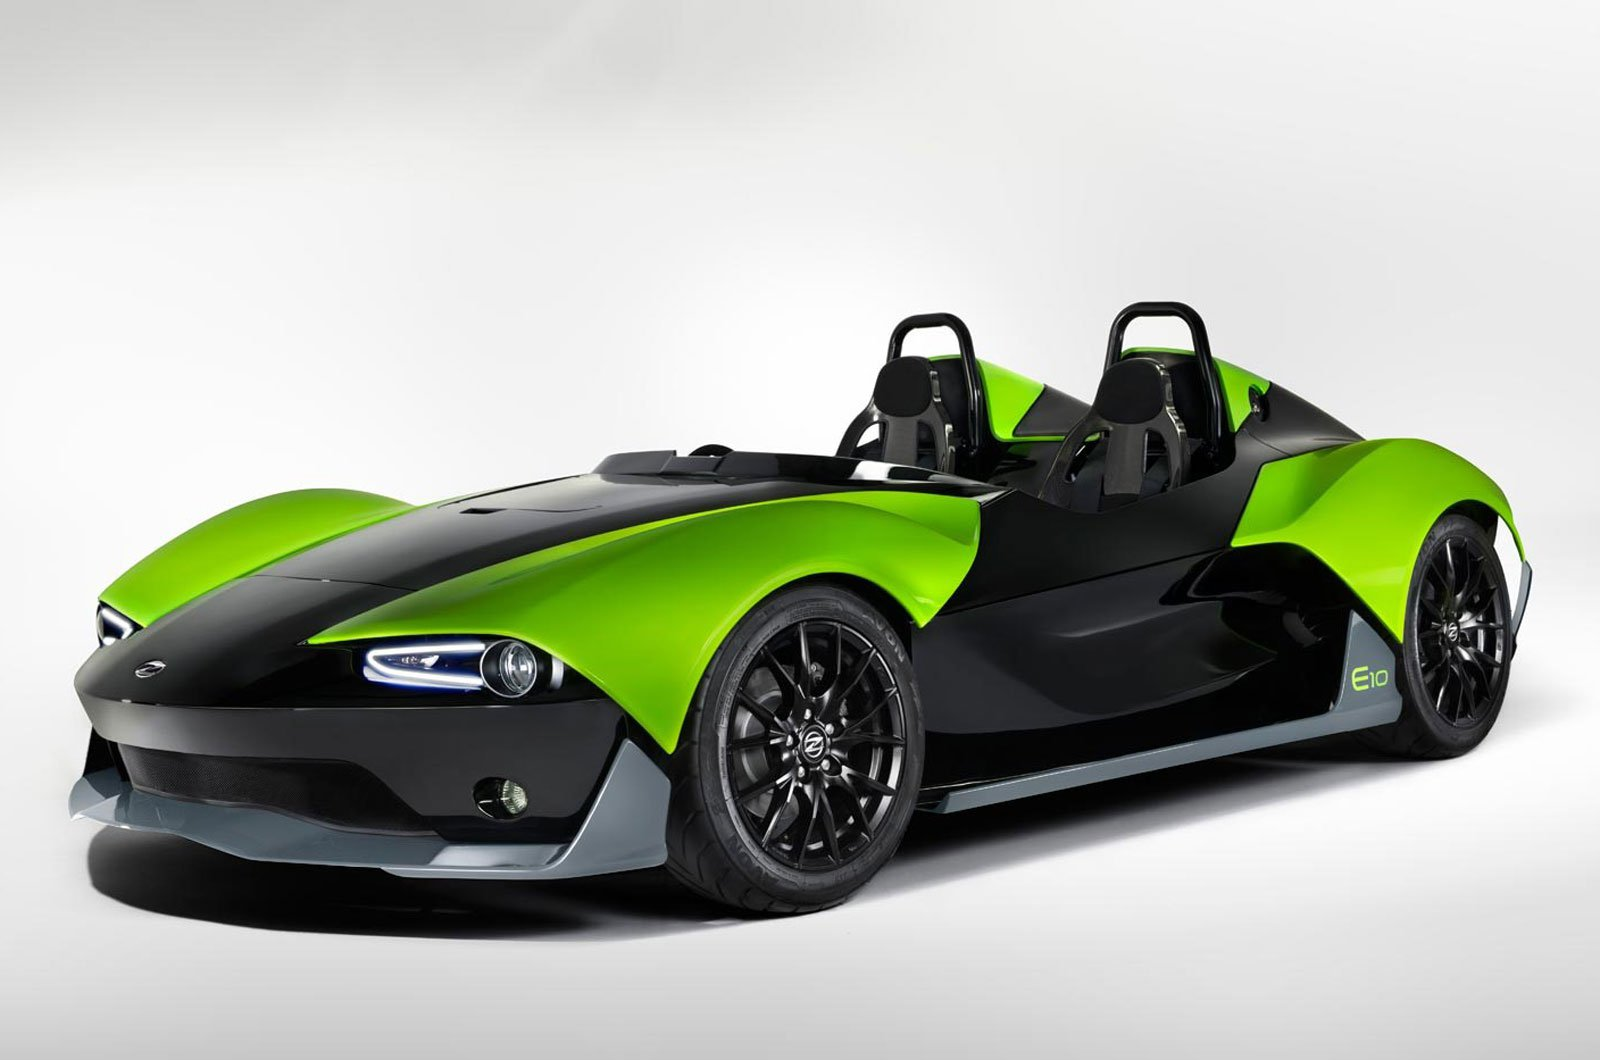 Zenos E10 - an exclusive sports car that is sold for the first time this year